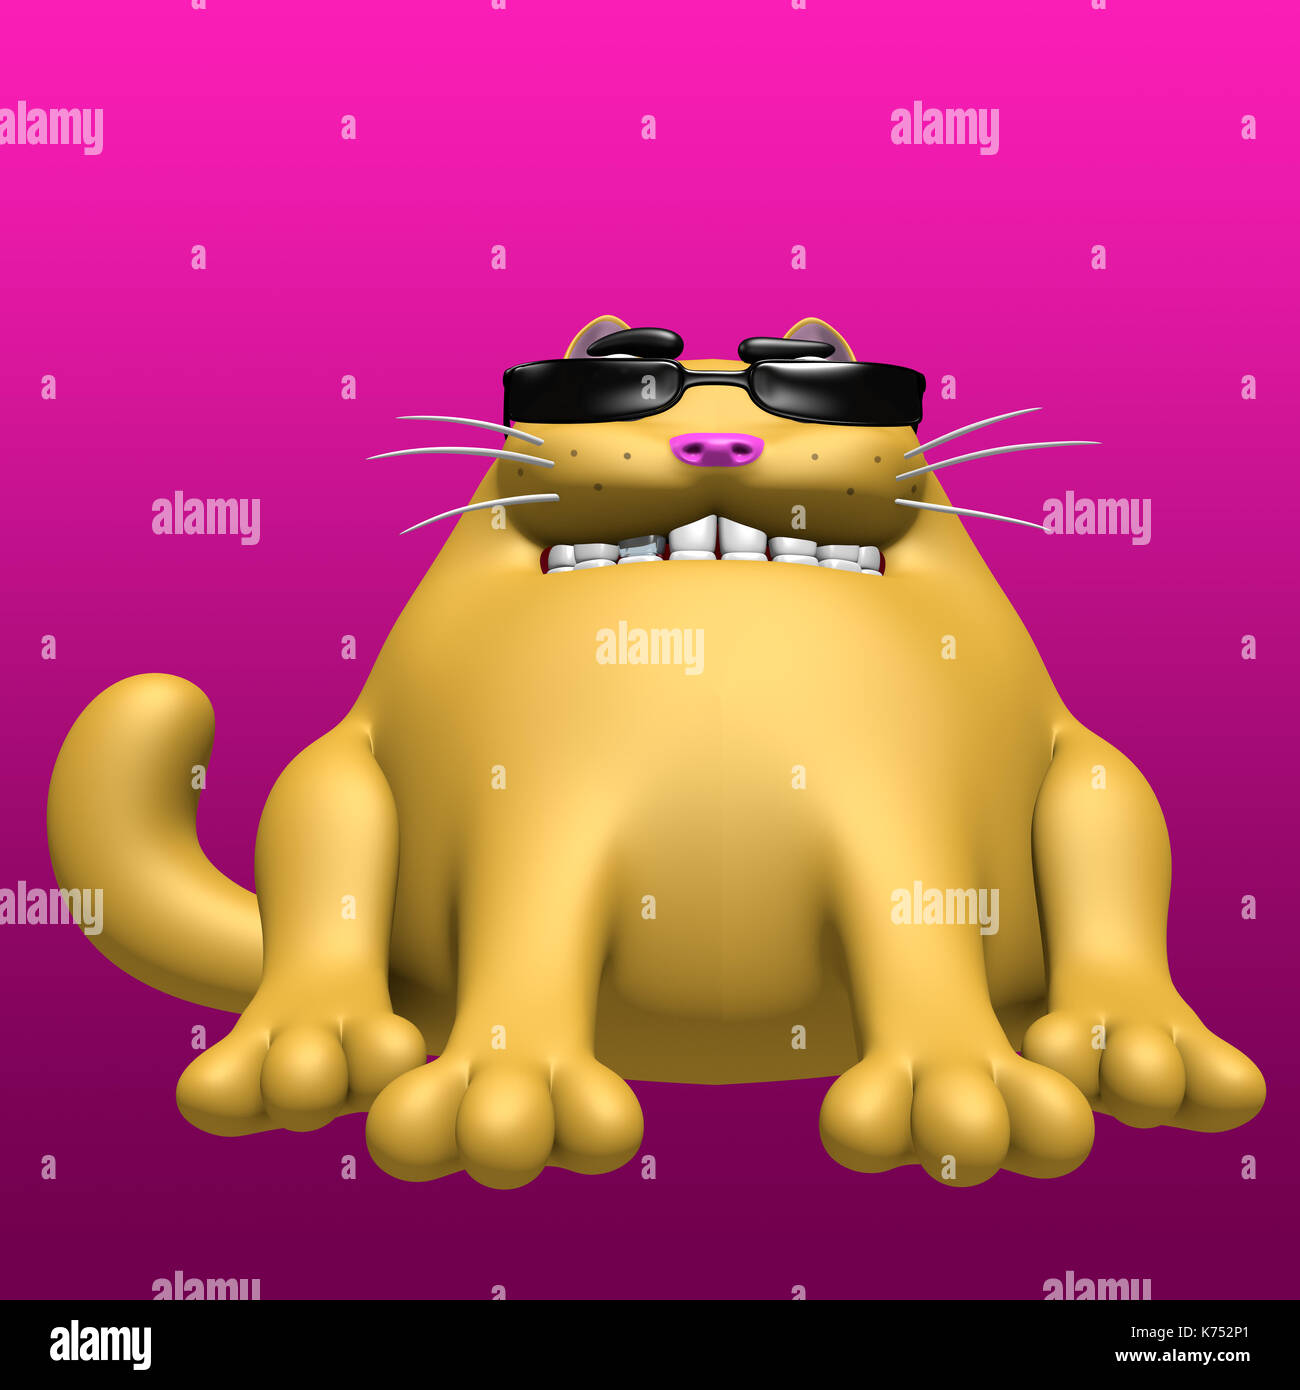 af27c36e60c Cute fat cat in black glasses. 3D illustration. Funny cartoon character. -  Stock